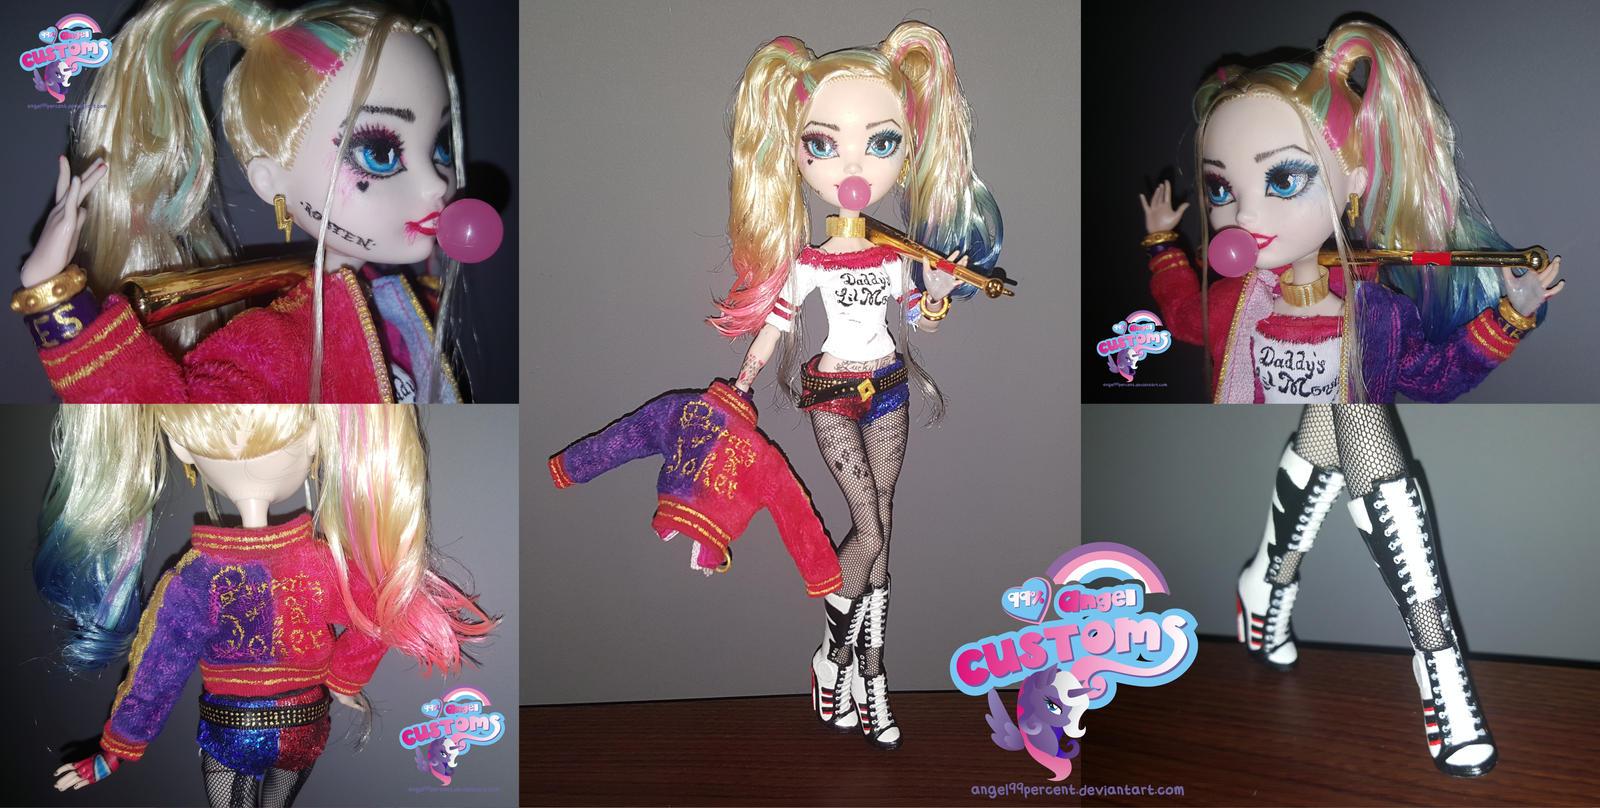 Harley Quinn custom doll from Suicide Squad